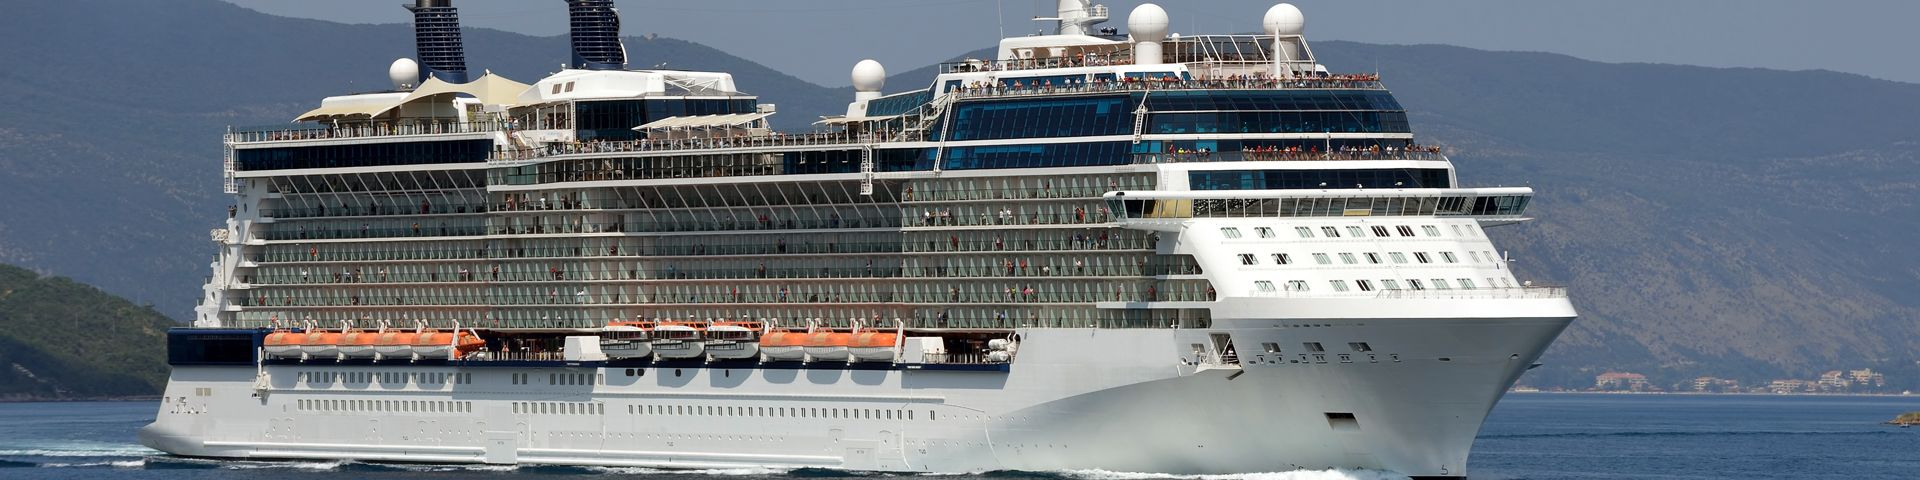 Cruise Ship Crime BCSI Investigations - Cruise ship crimes